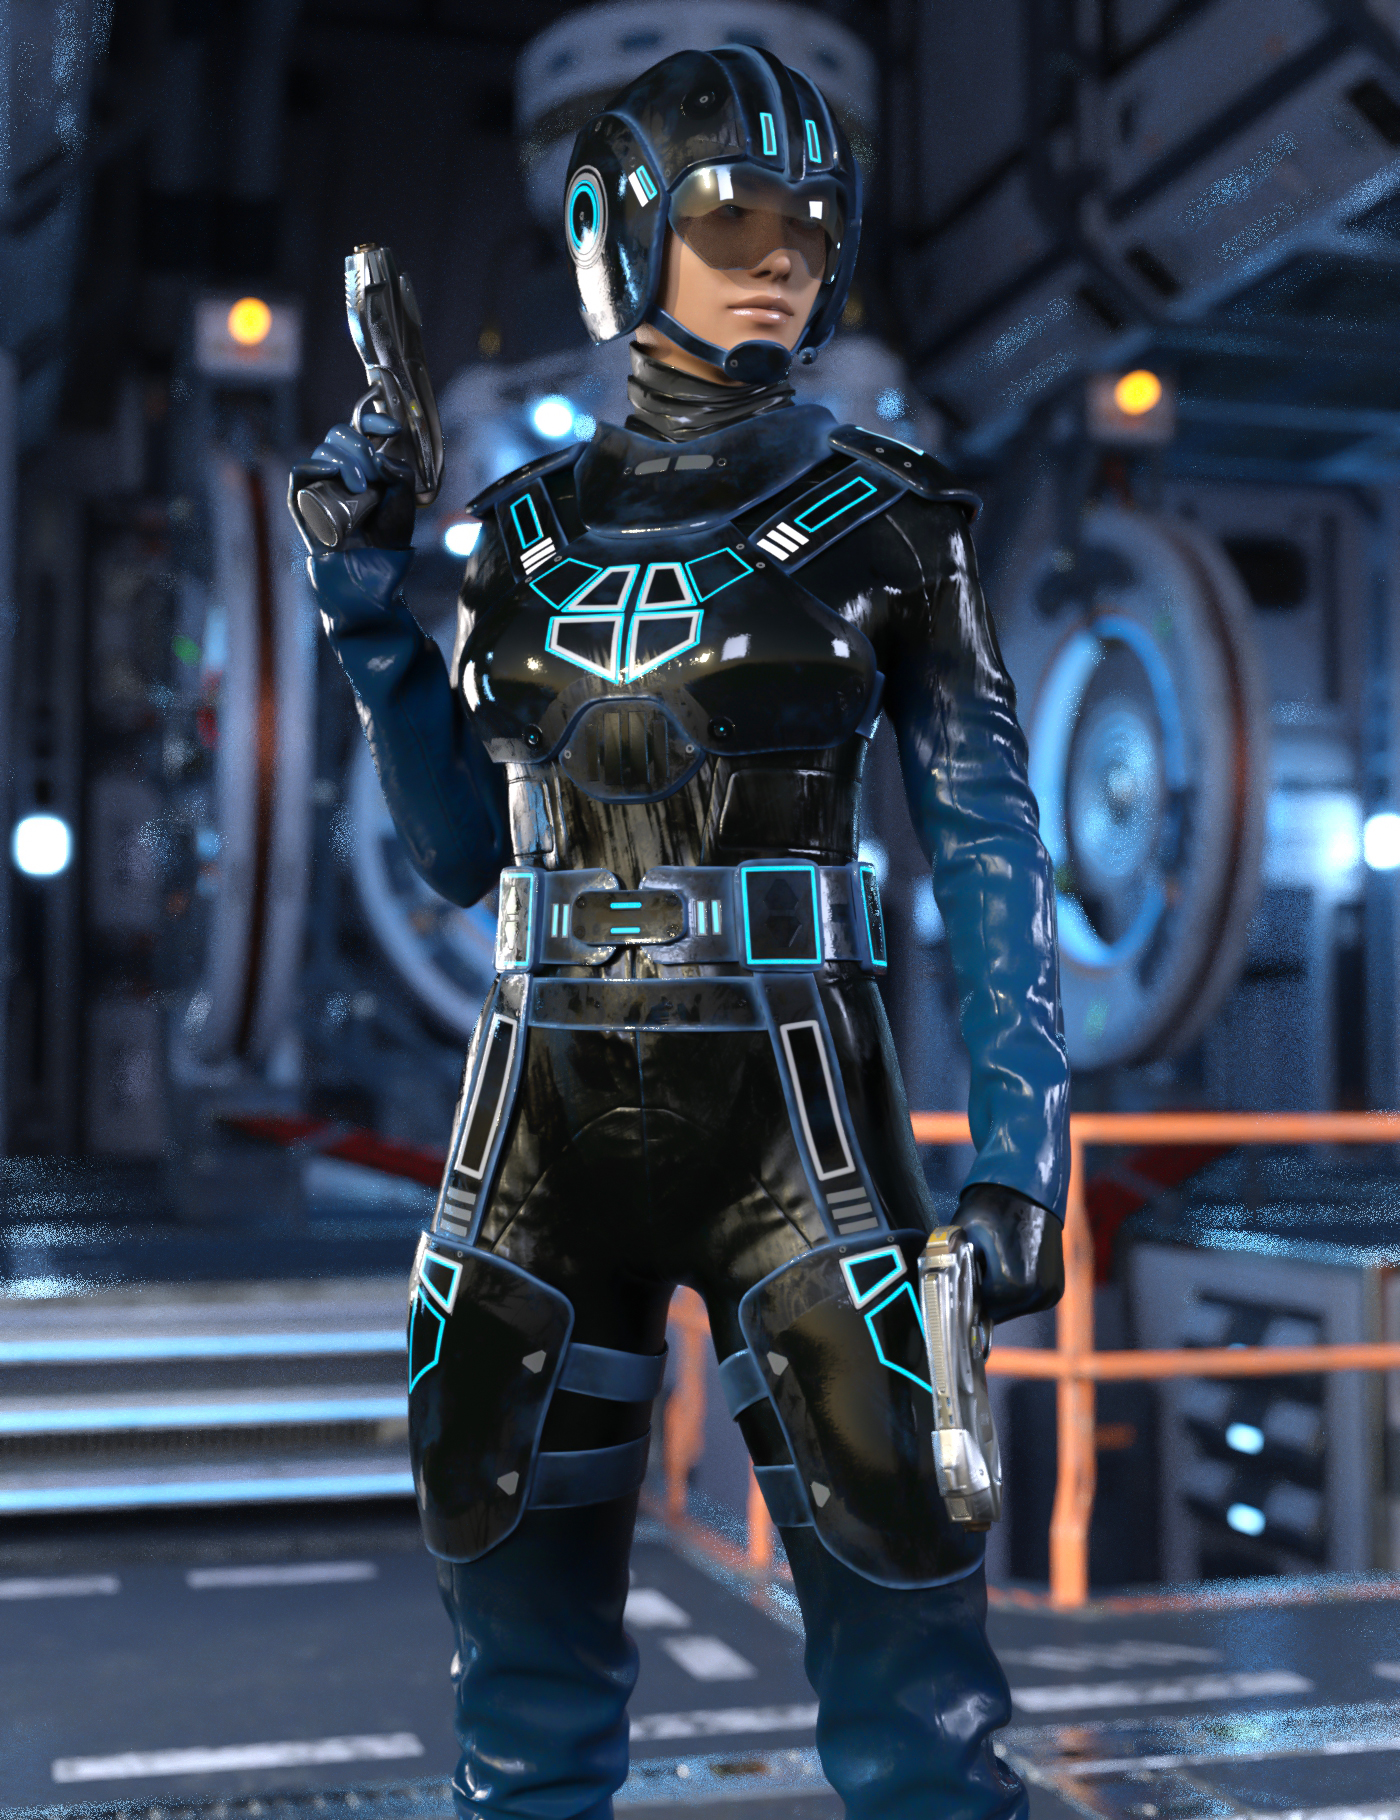 Space Runner Outfit for Genesis 8 Female(s) by: Yura, 3D Models by Daz 3D